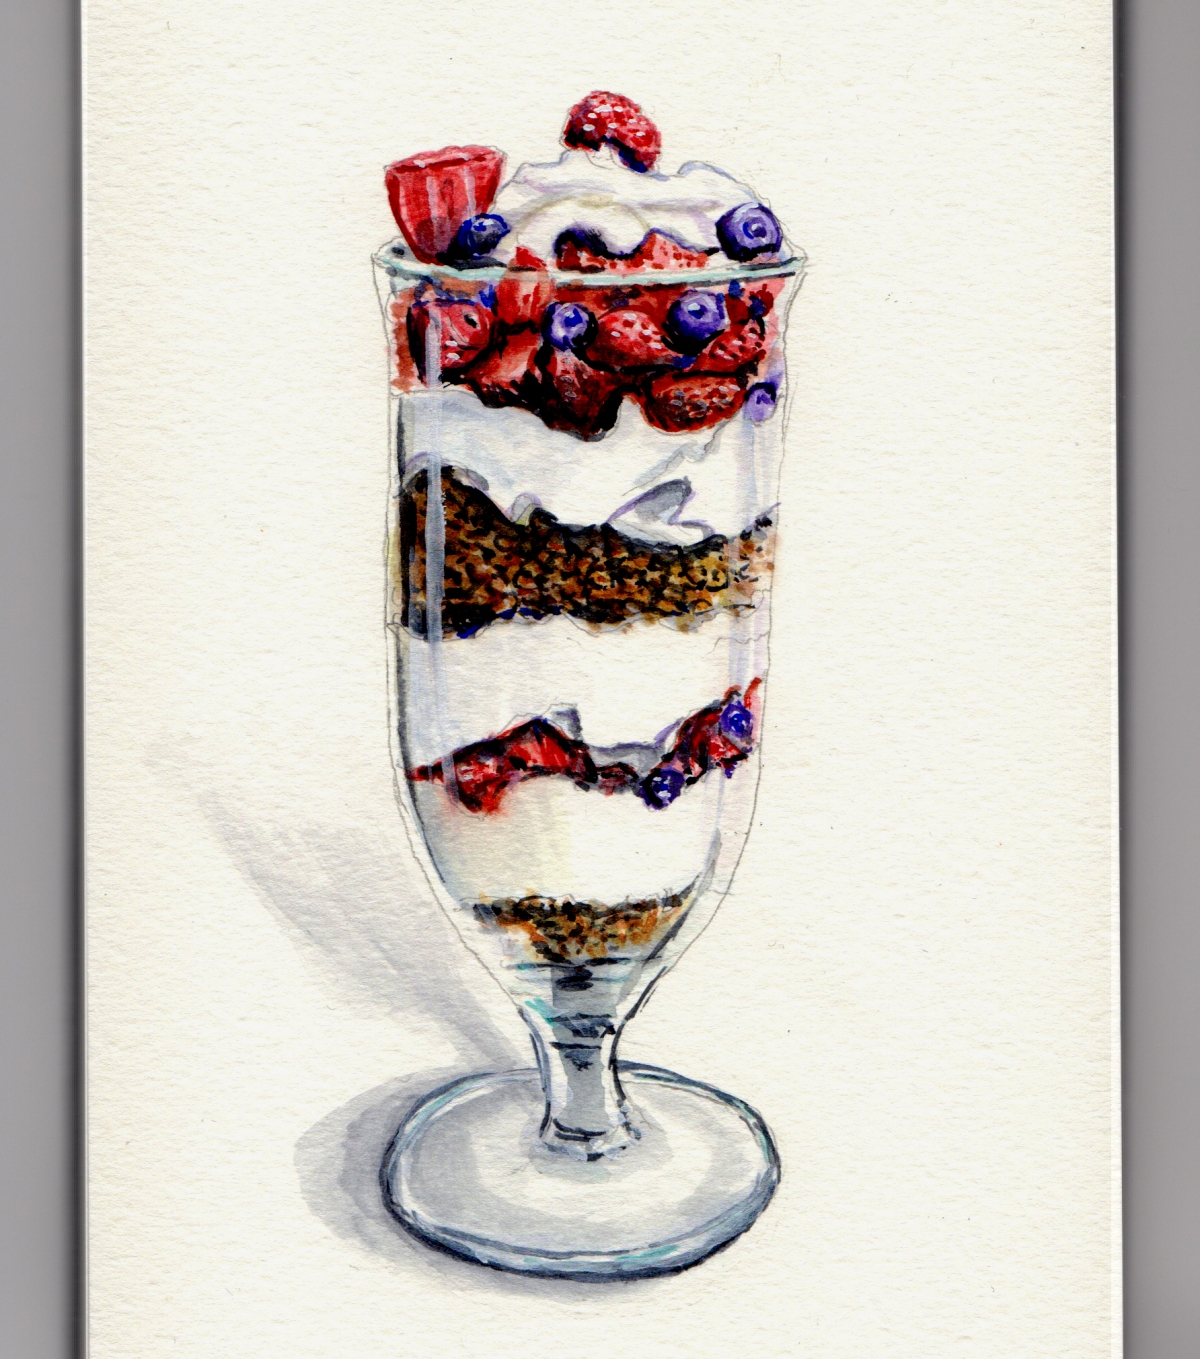 National Parfait Day by Charlie O'Shields